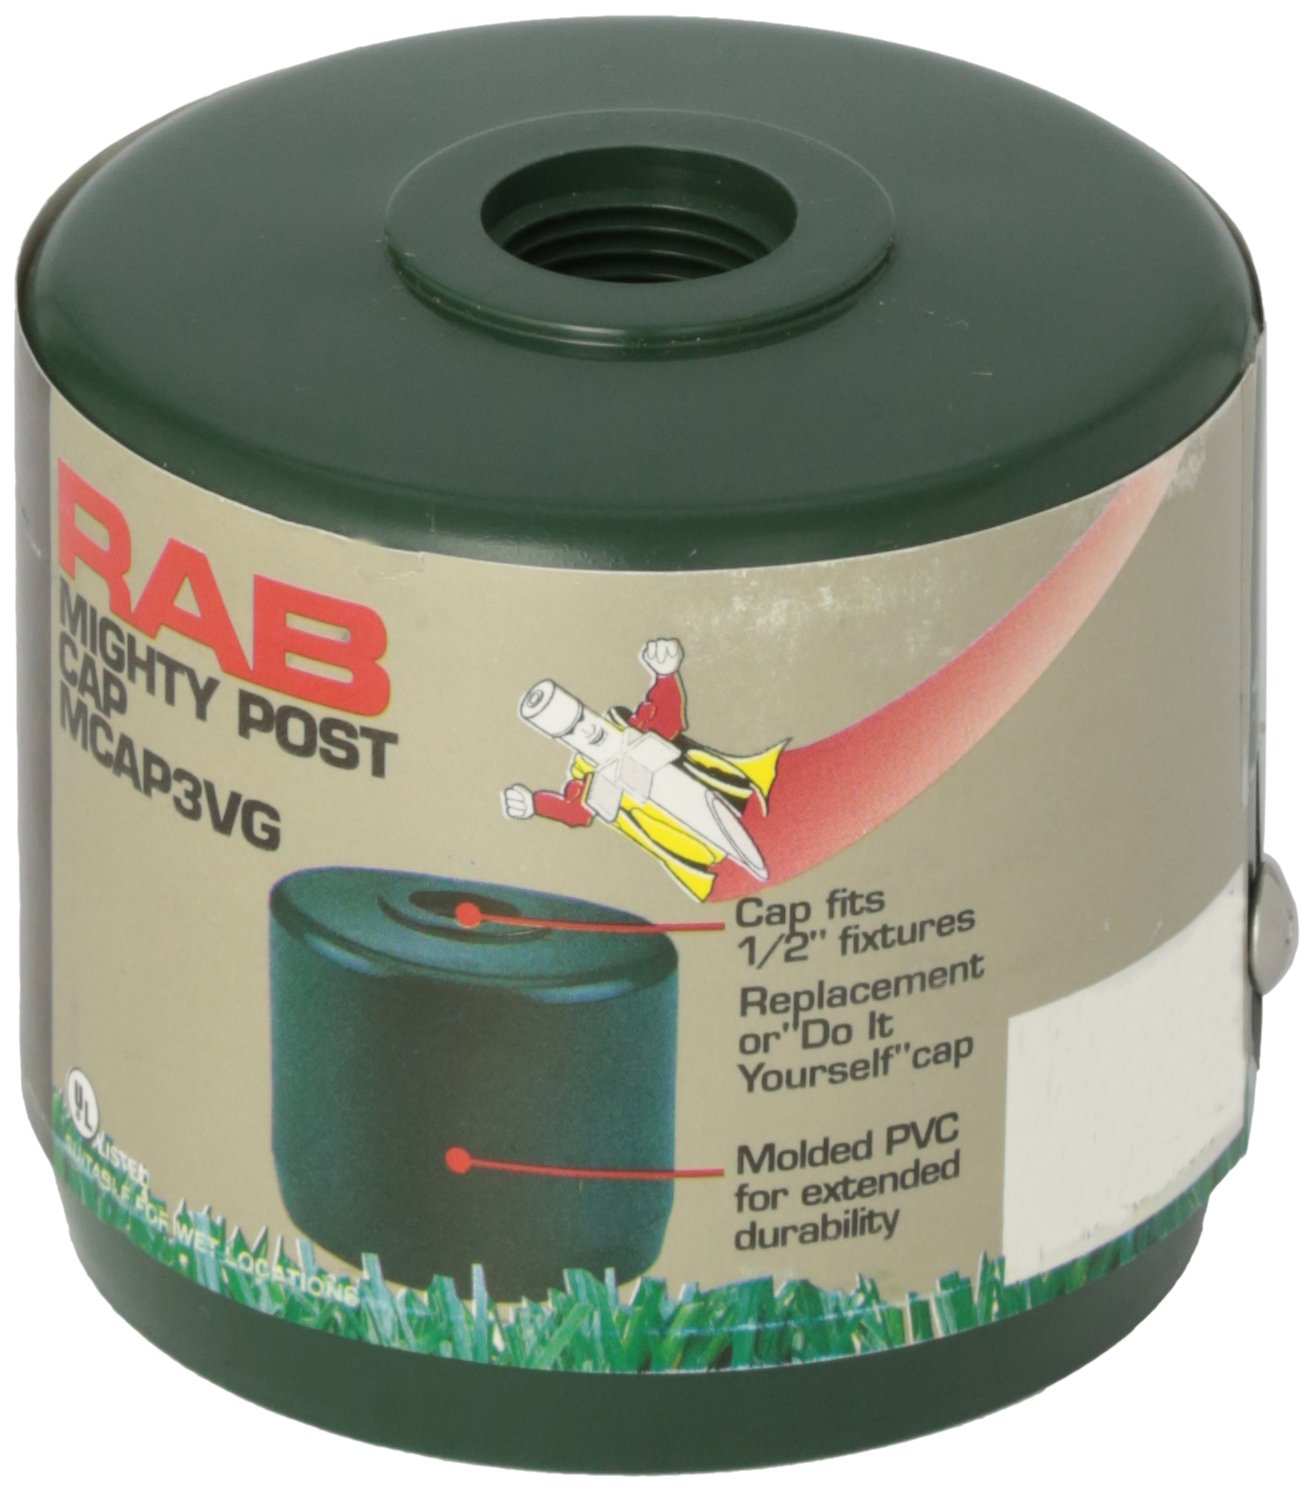 RAB Lighting MCAP3VG Mighty Post Cap for 3'' Pipe, 2-7/8'' OD, Verde Green by RAB Lighting